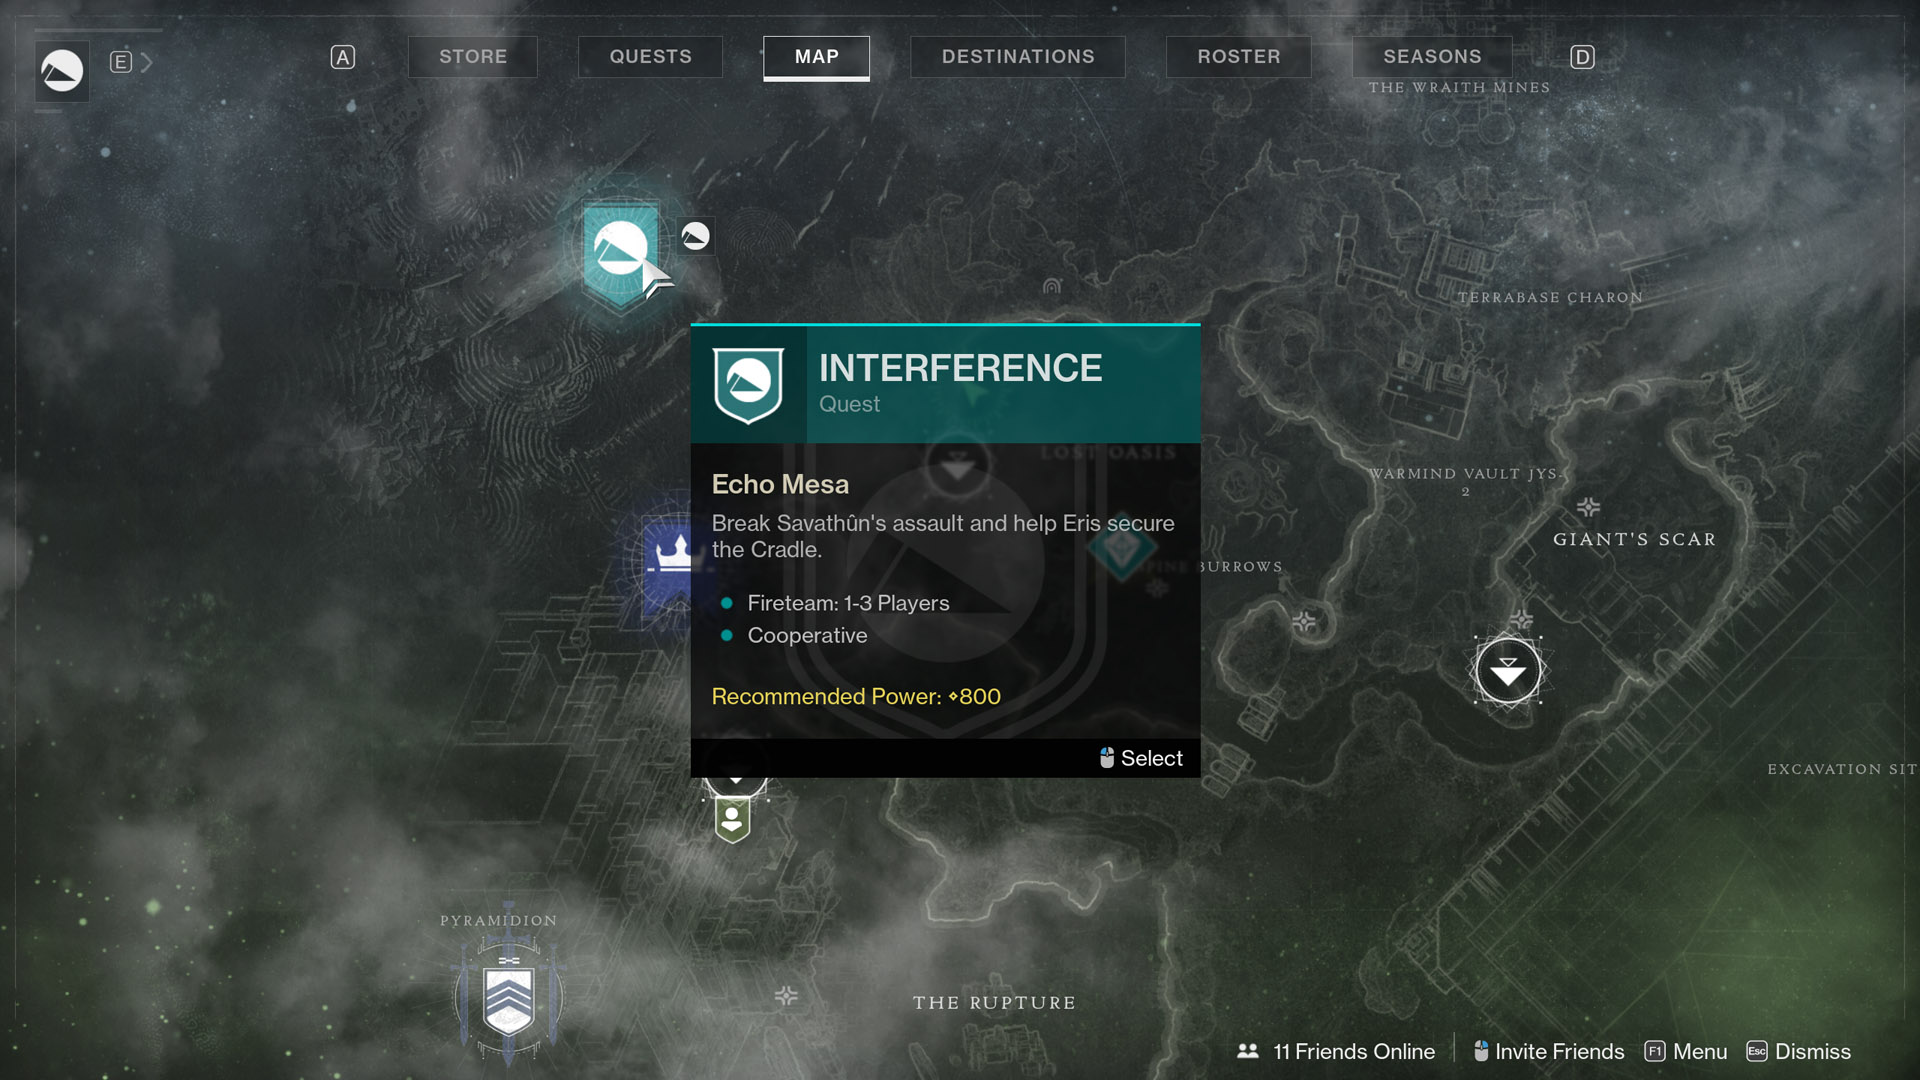 destiny 2 season of arrivals Means to an End Perseverance Interference